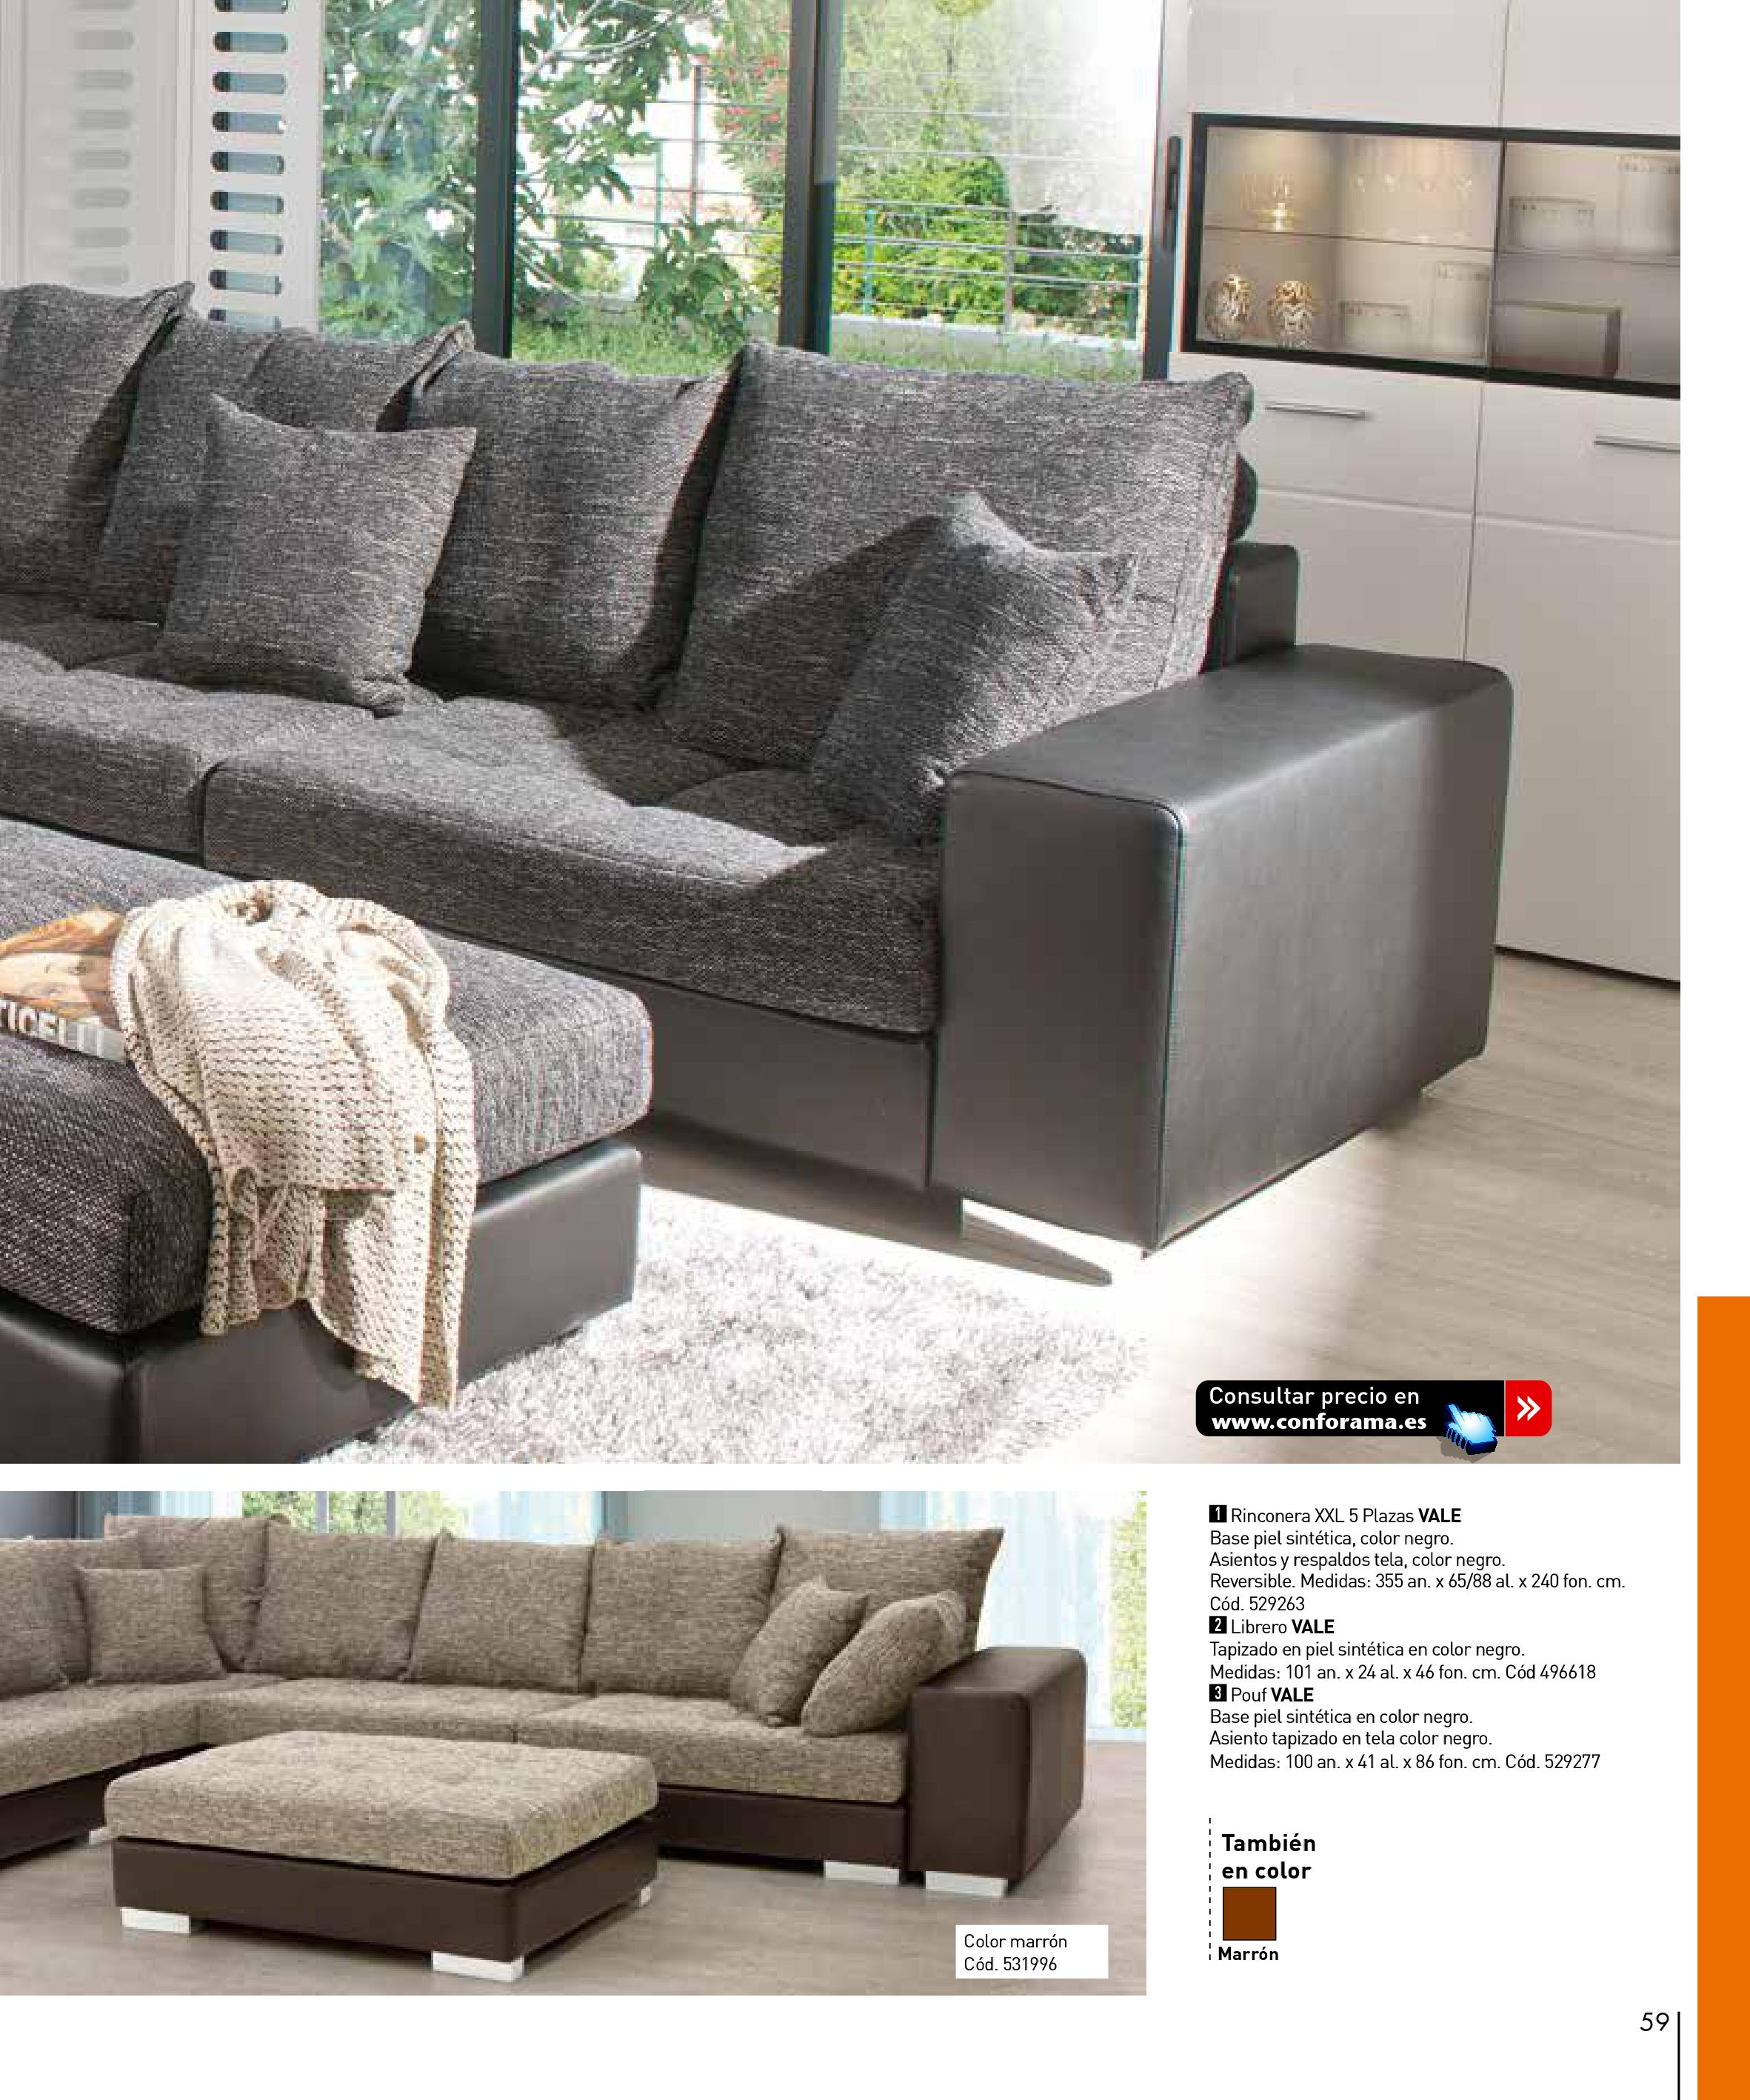 Sofas conforama 201559 for Sofas conforama catalogo